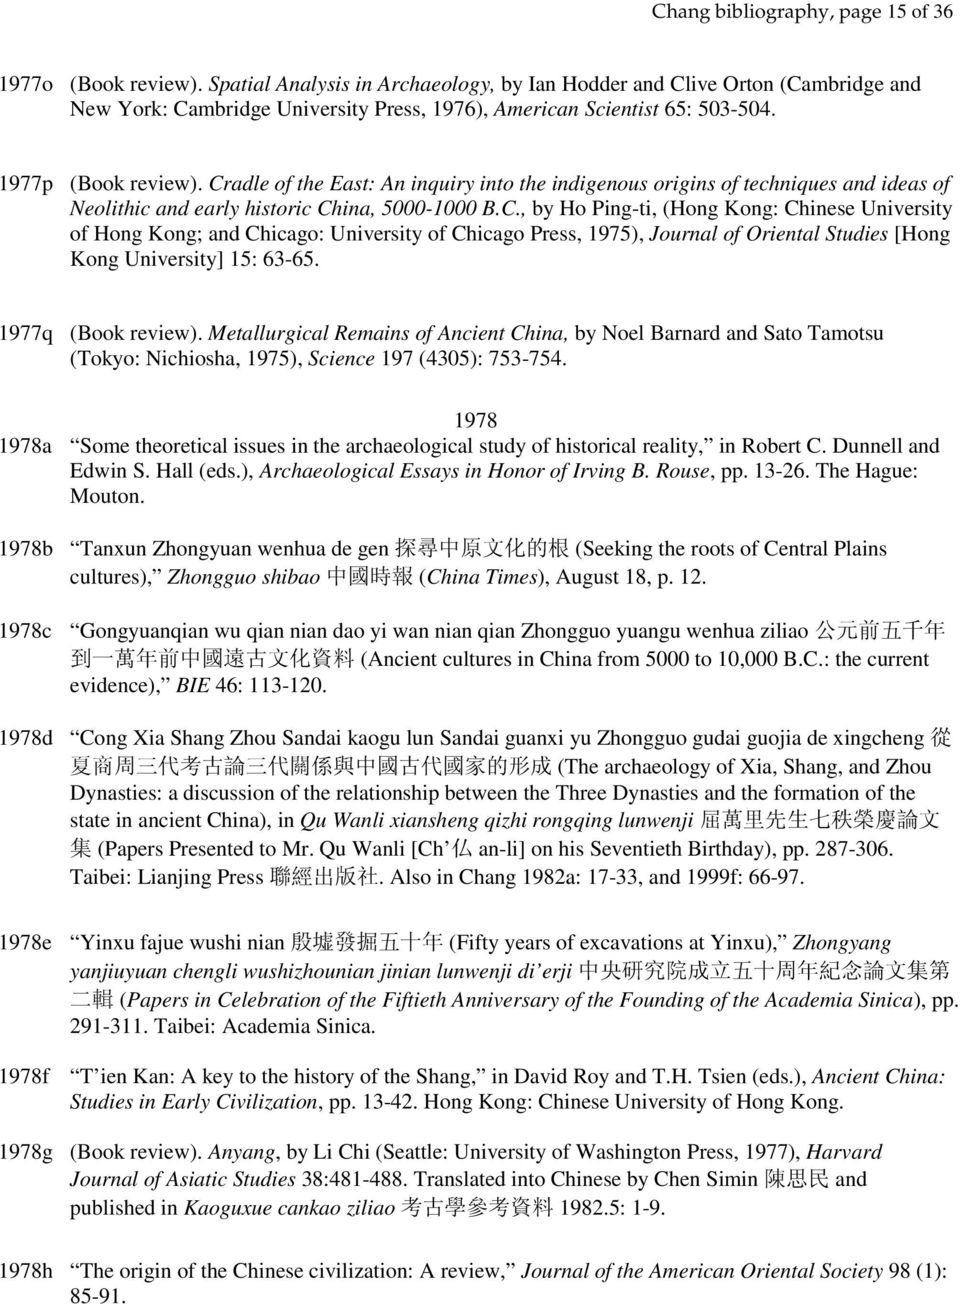 Cradle of the East: An inquiry into the indigenous origins of techniques and ideas of Neolithic and early historic China, 5000-1000 B.C., by Ho Ping-ti, (Hong Kong: Chinese University of Hong Kong; and Chicago: University of Chicago Press, 1975), Journal of Oriental Studies [Hong Kong University] 15: 63-65.